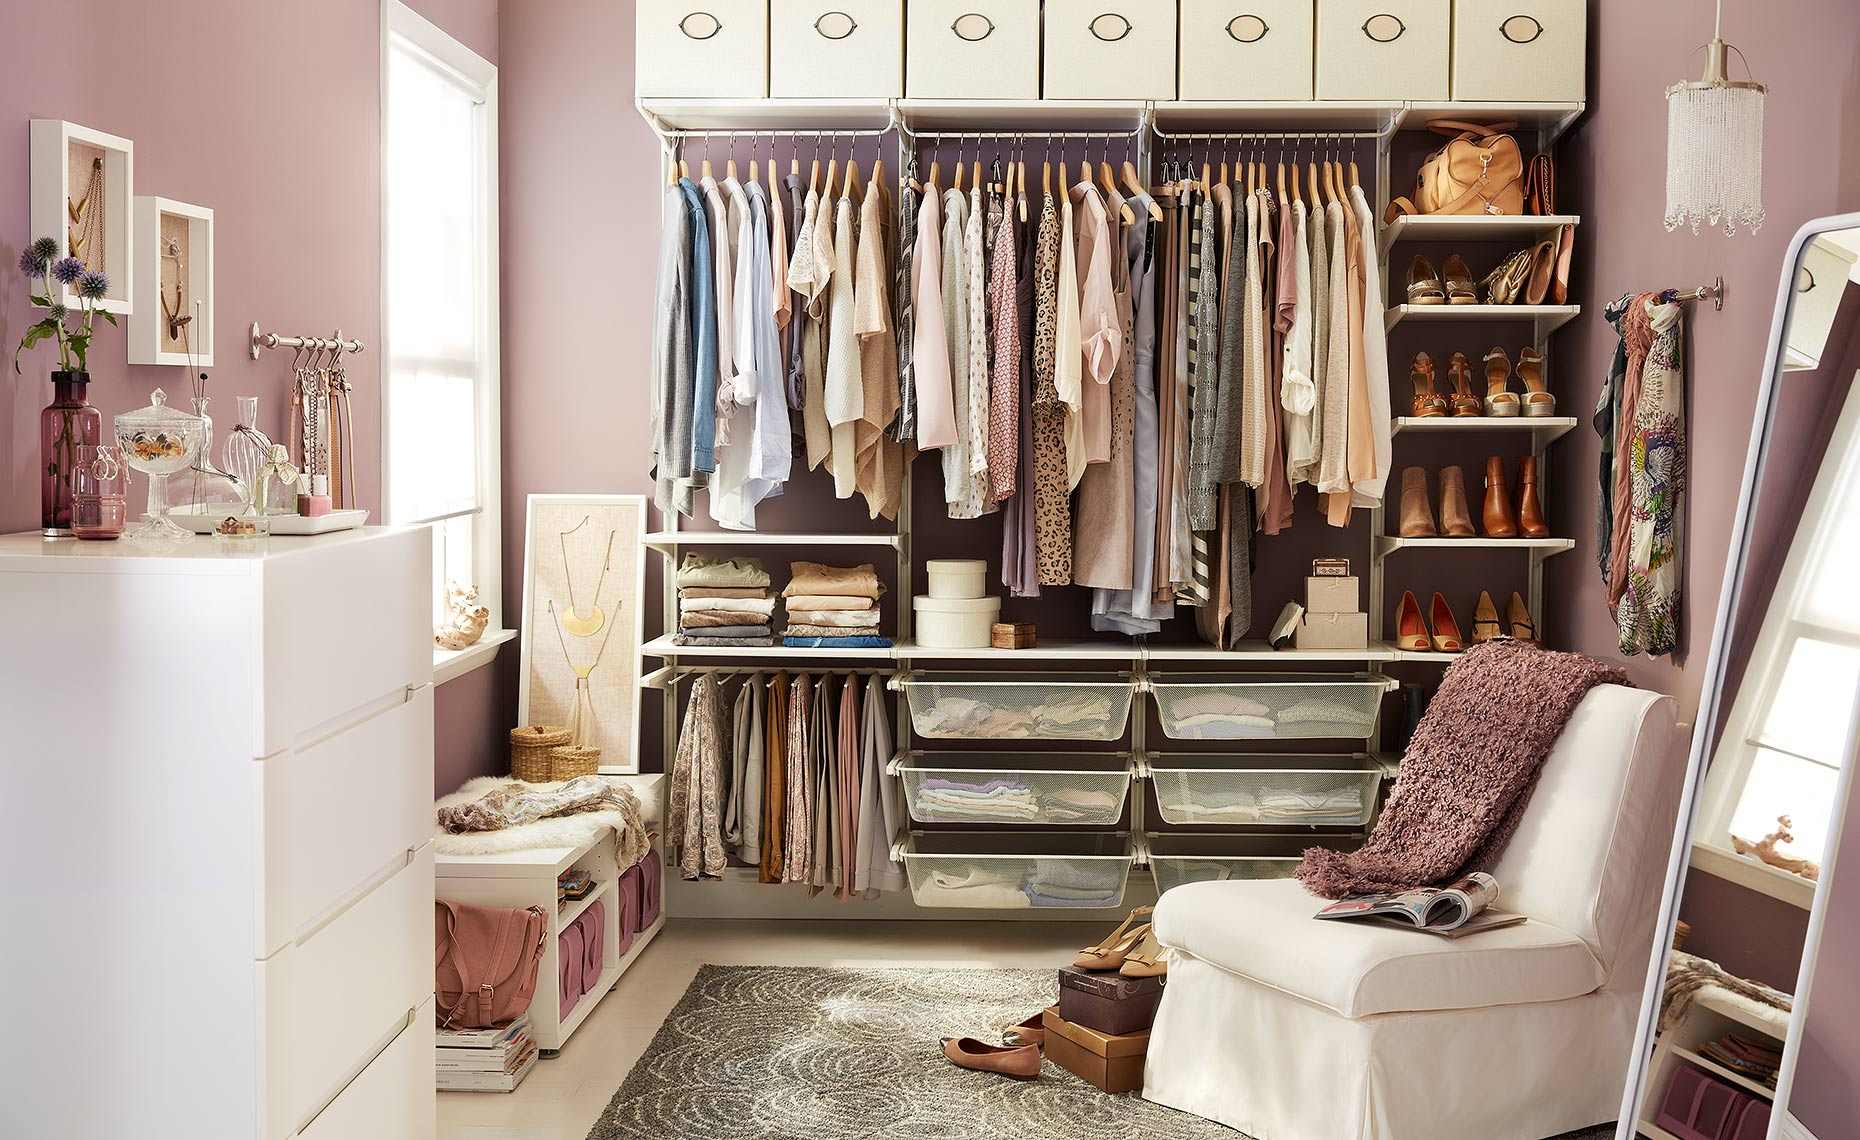 catalog photo for IKEA showing closet style and organization.